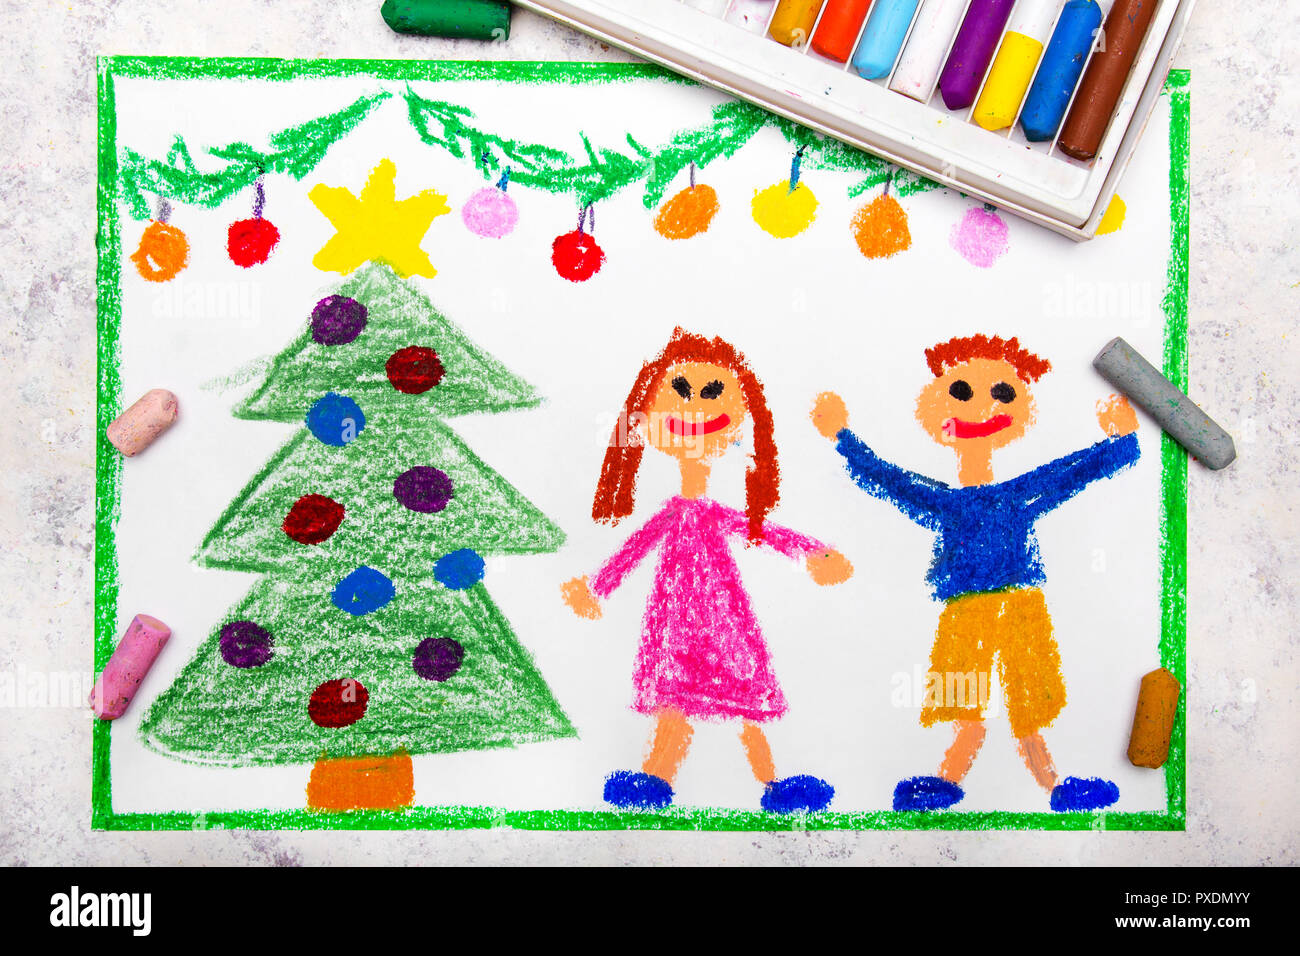 Colorful Drawing A Christmas Time A Smiling Couple And A Beautiful Christmas Tree Stock Photo Alamy